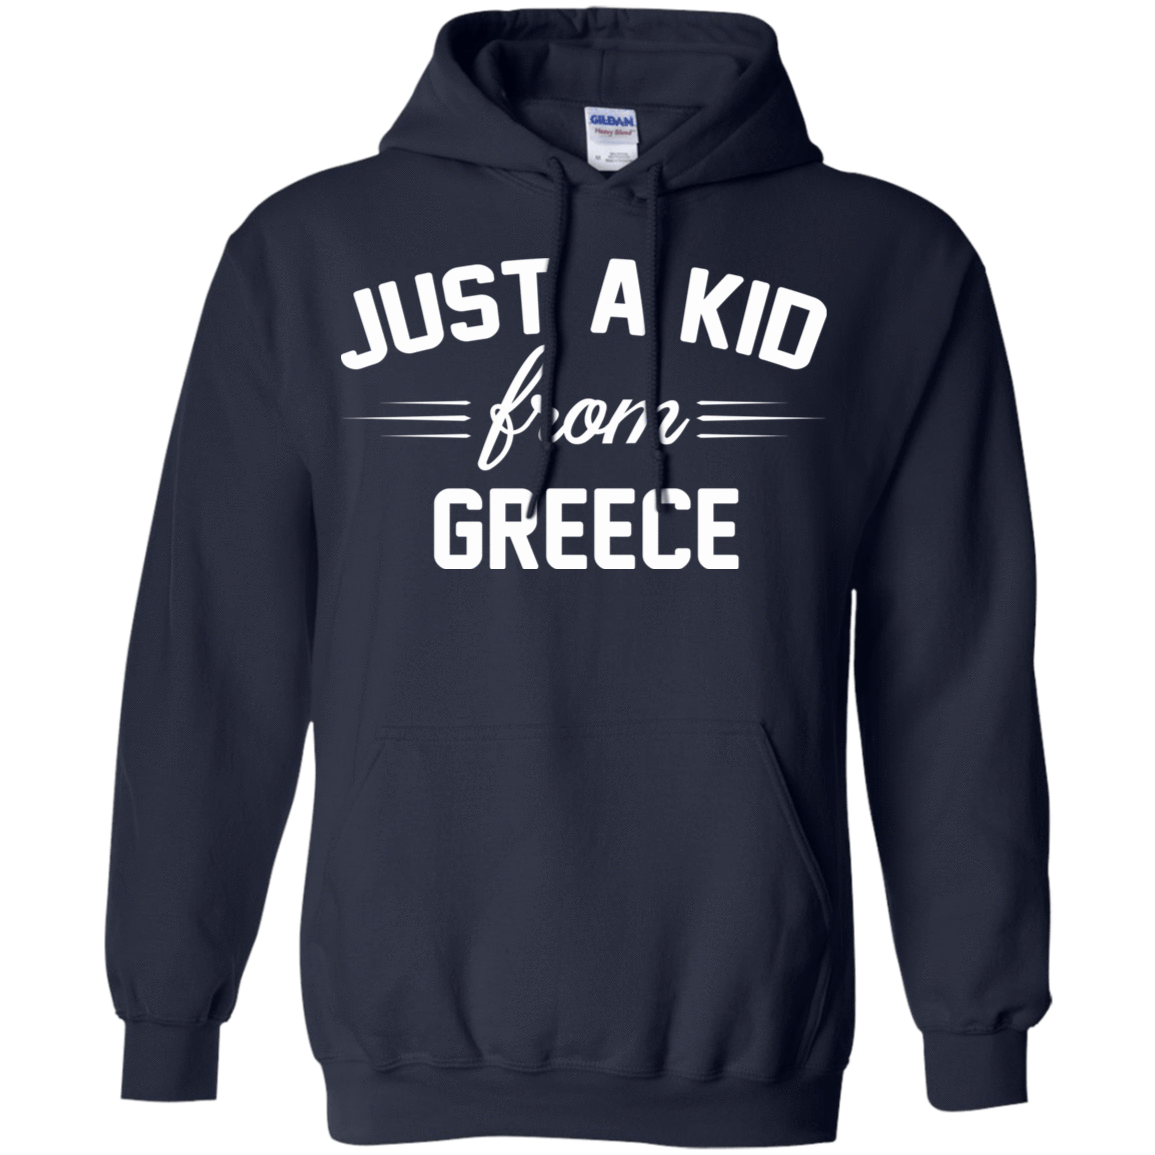 Just a Kid Store | Greece T-Shirts, Hoodie, Tank 541-4742-72091636-23135 - Tee Ript